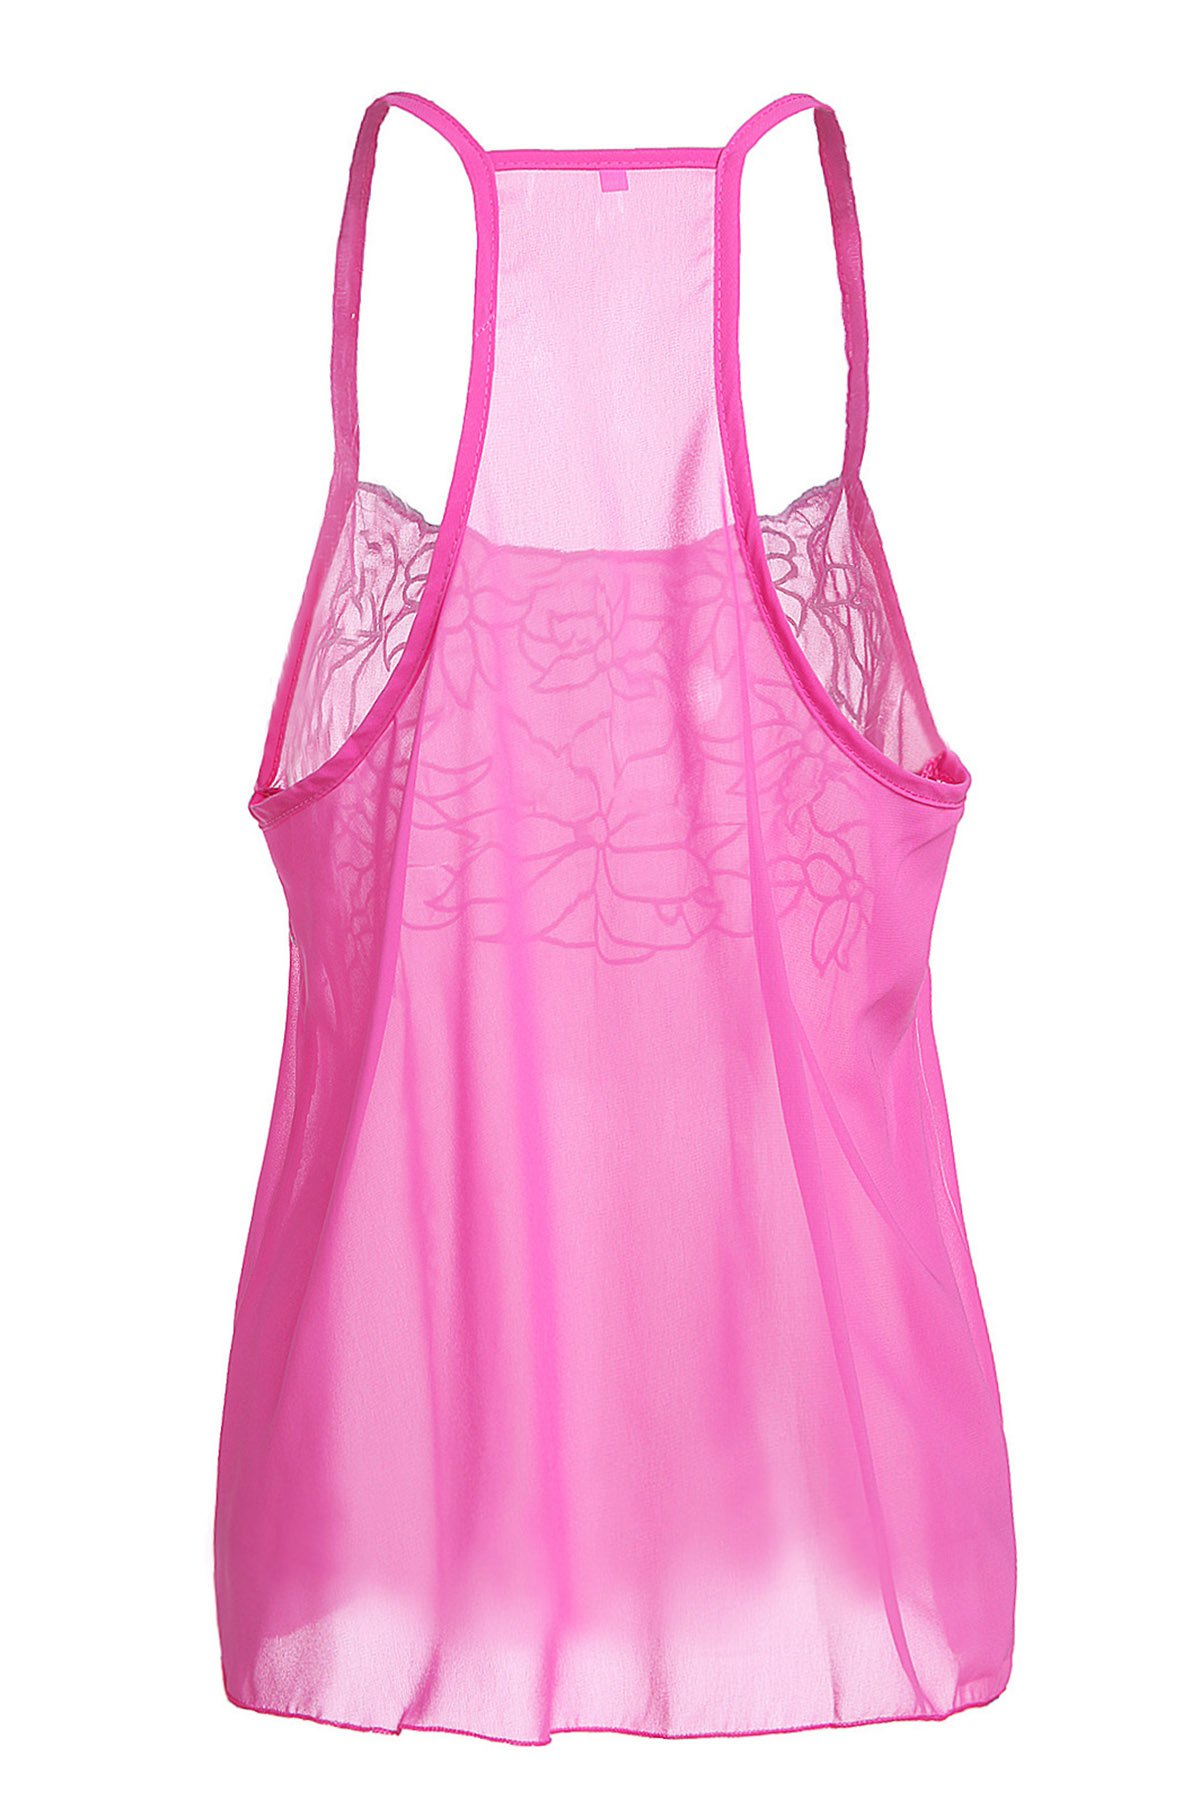 1aafcfba New Casual Low Cut Embroidered Flower Chiffon Racerback Tank Top For Women